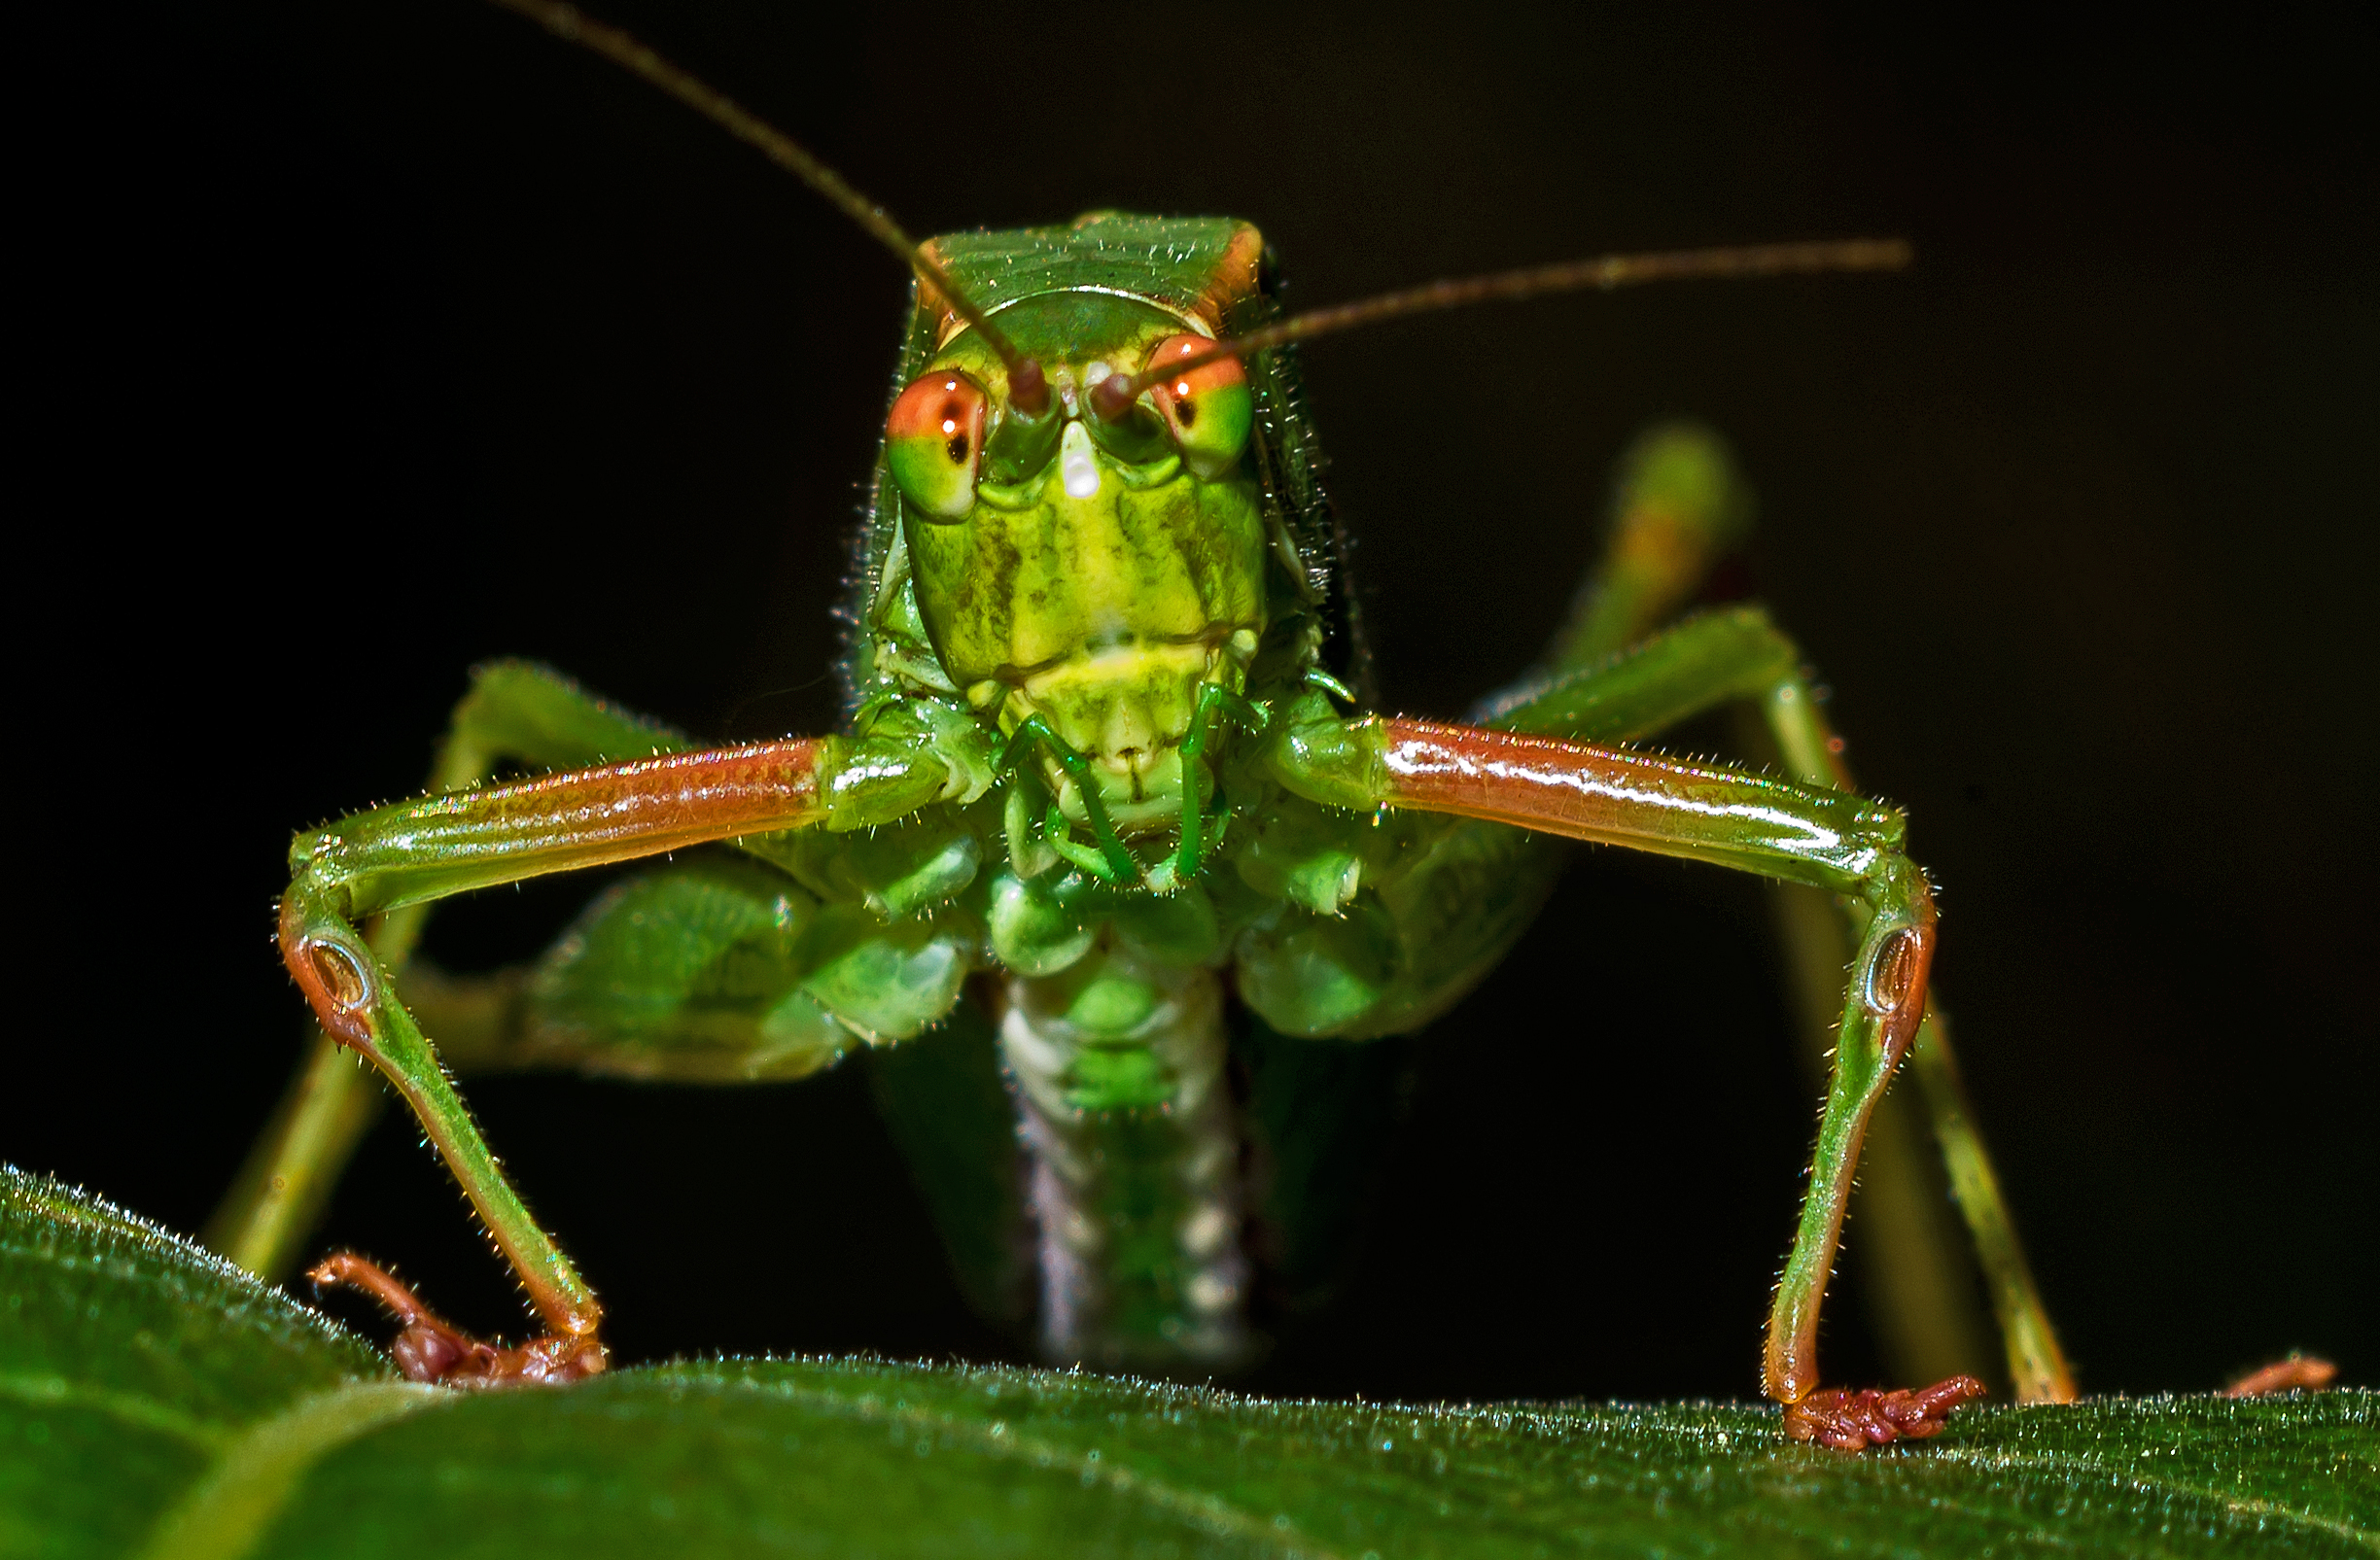 Our Six-Legged Inspector General – Honorable Mention, by Jeffrey Seldomridge